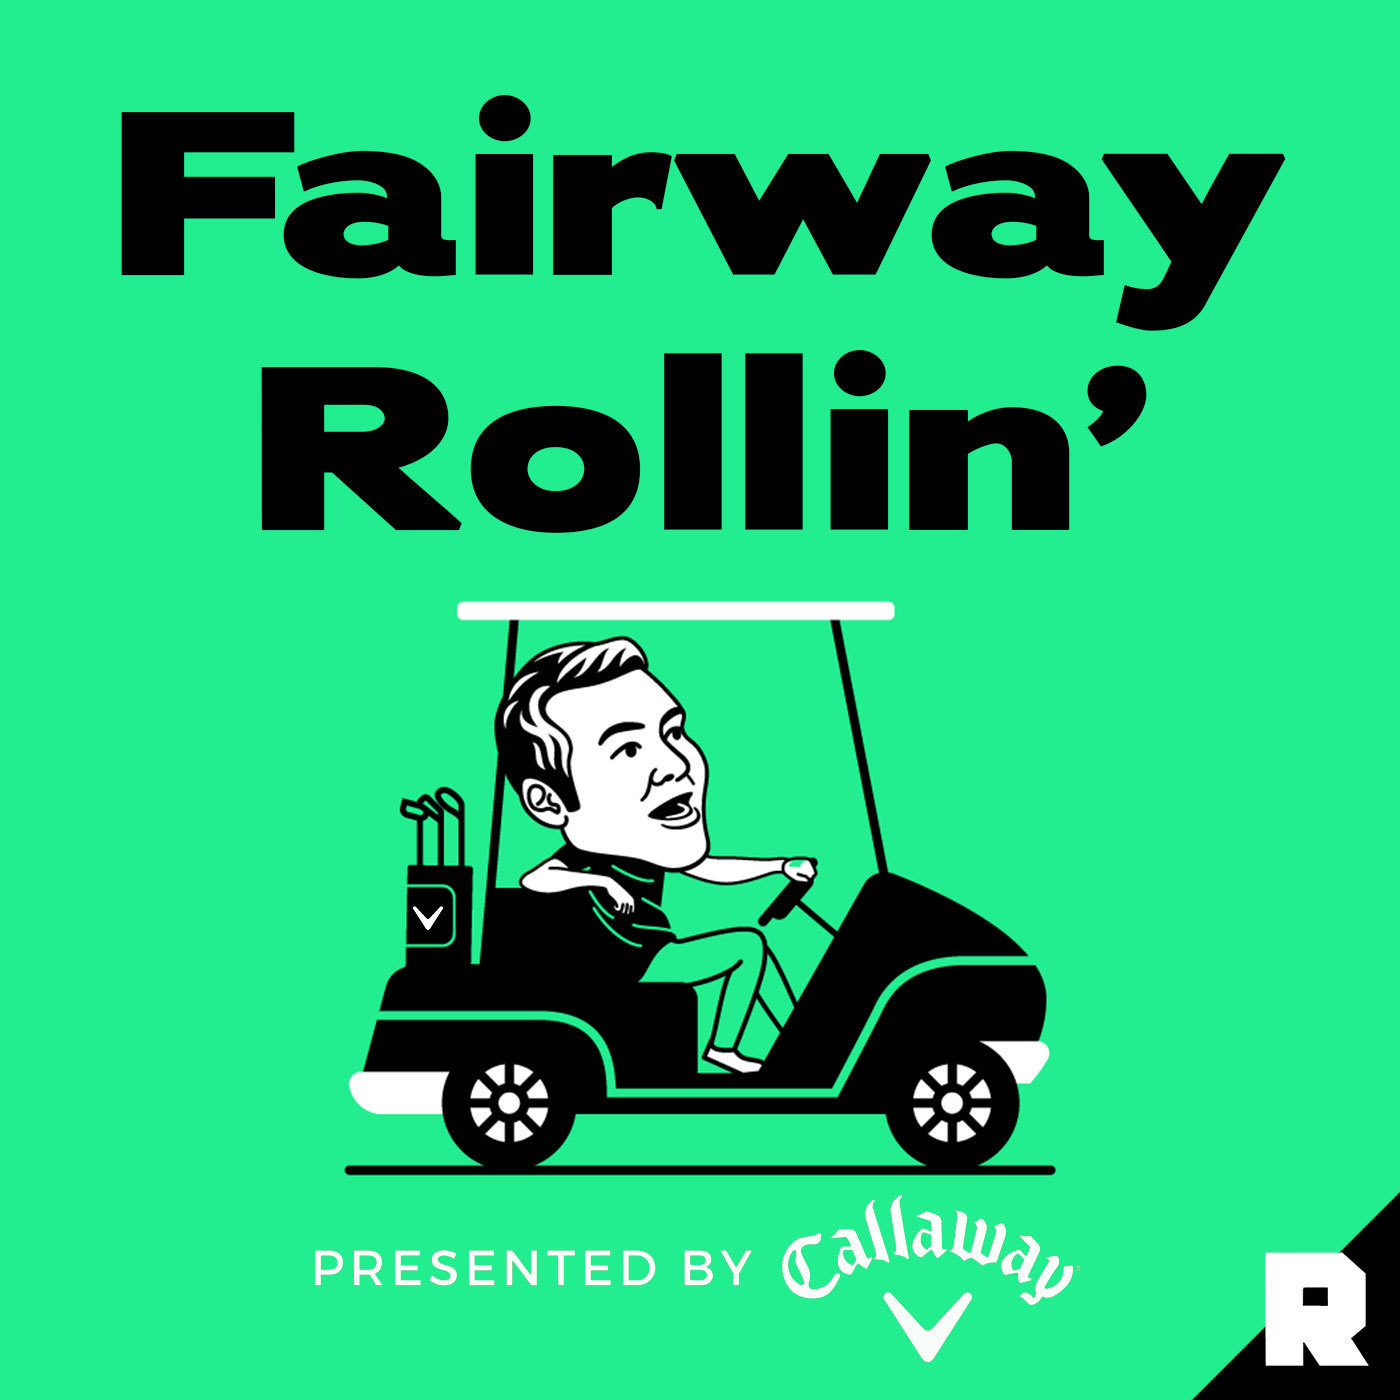 Irishman Shane Lowry Wins, Rory McIlroy Disappoints, and the Year of Brooks Koepka With Bill Simmons and Chris Vernon | Fairway Rollin'